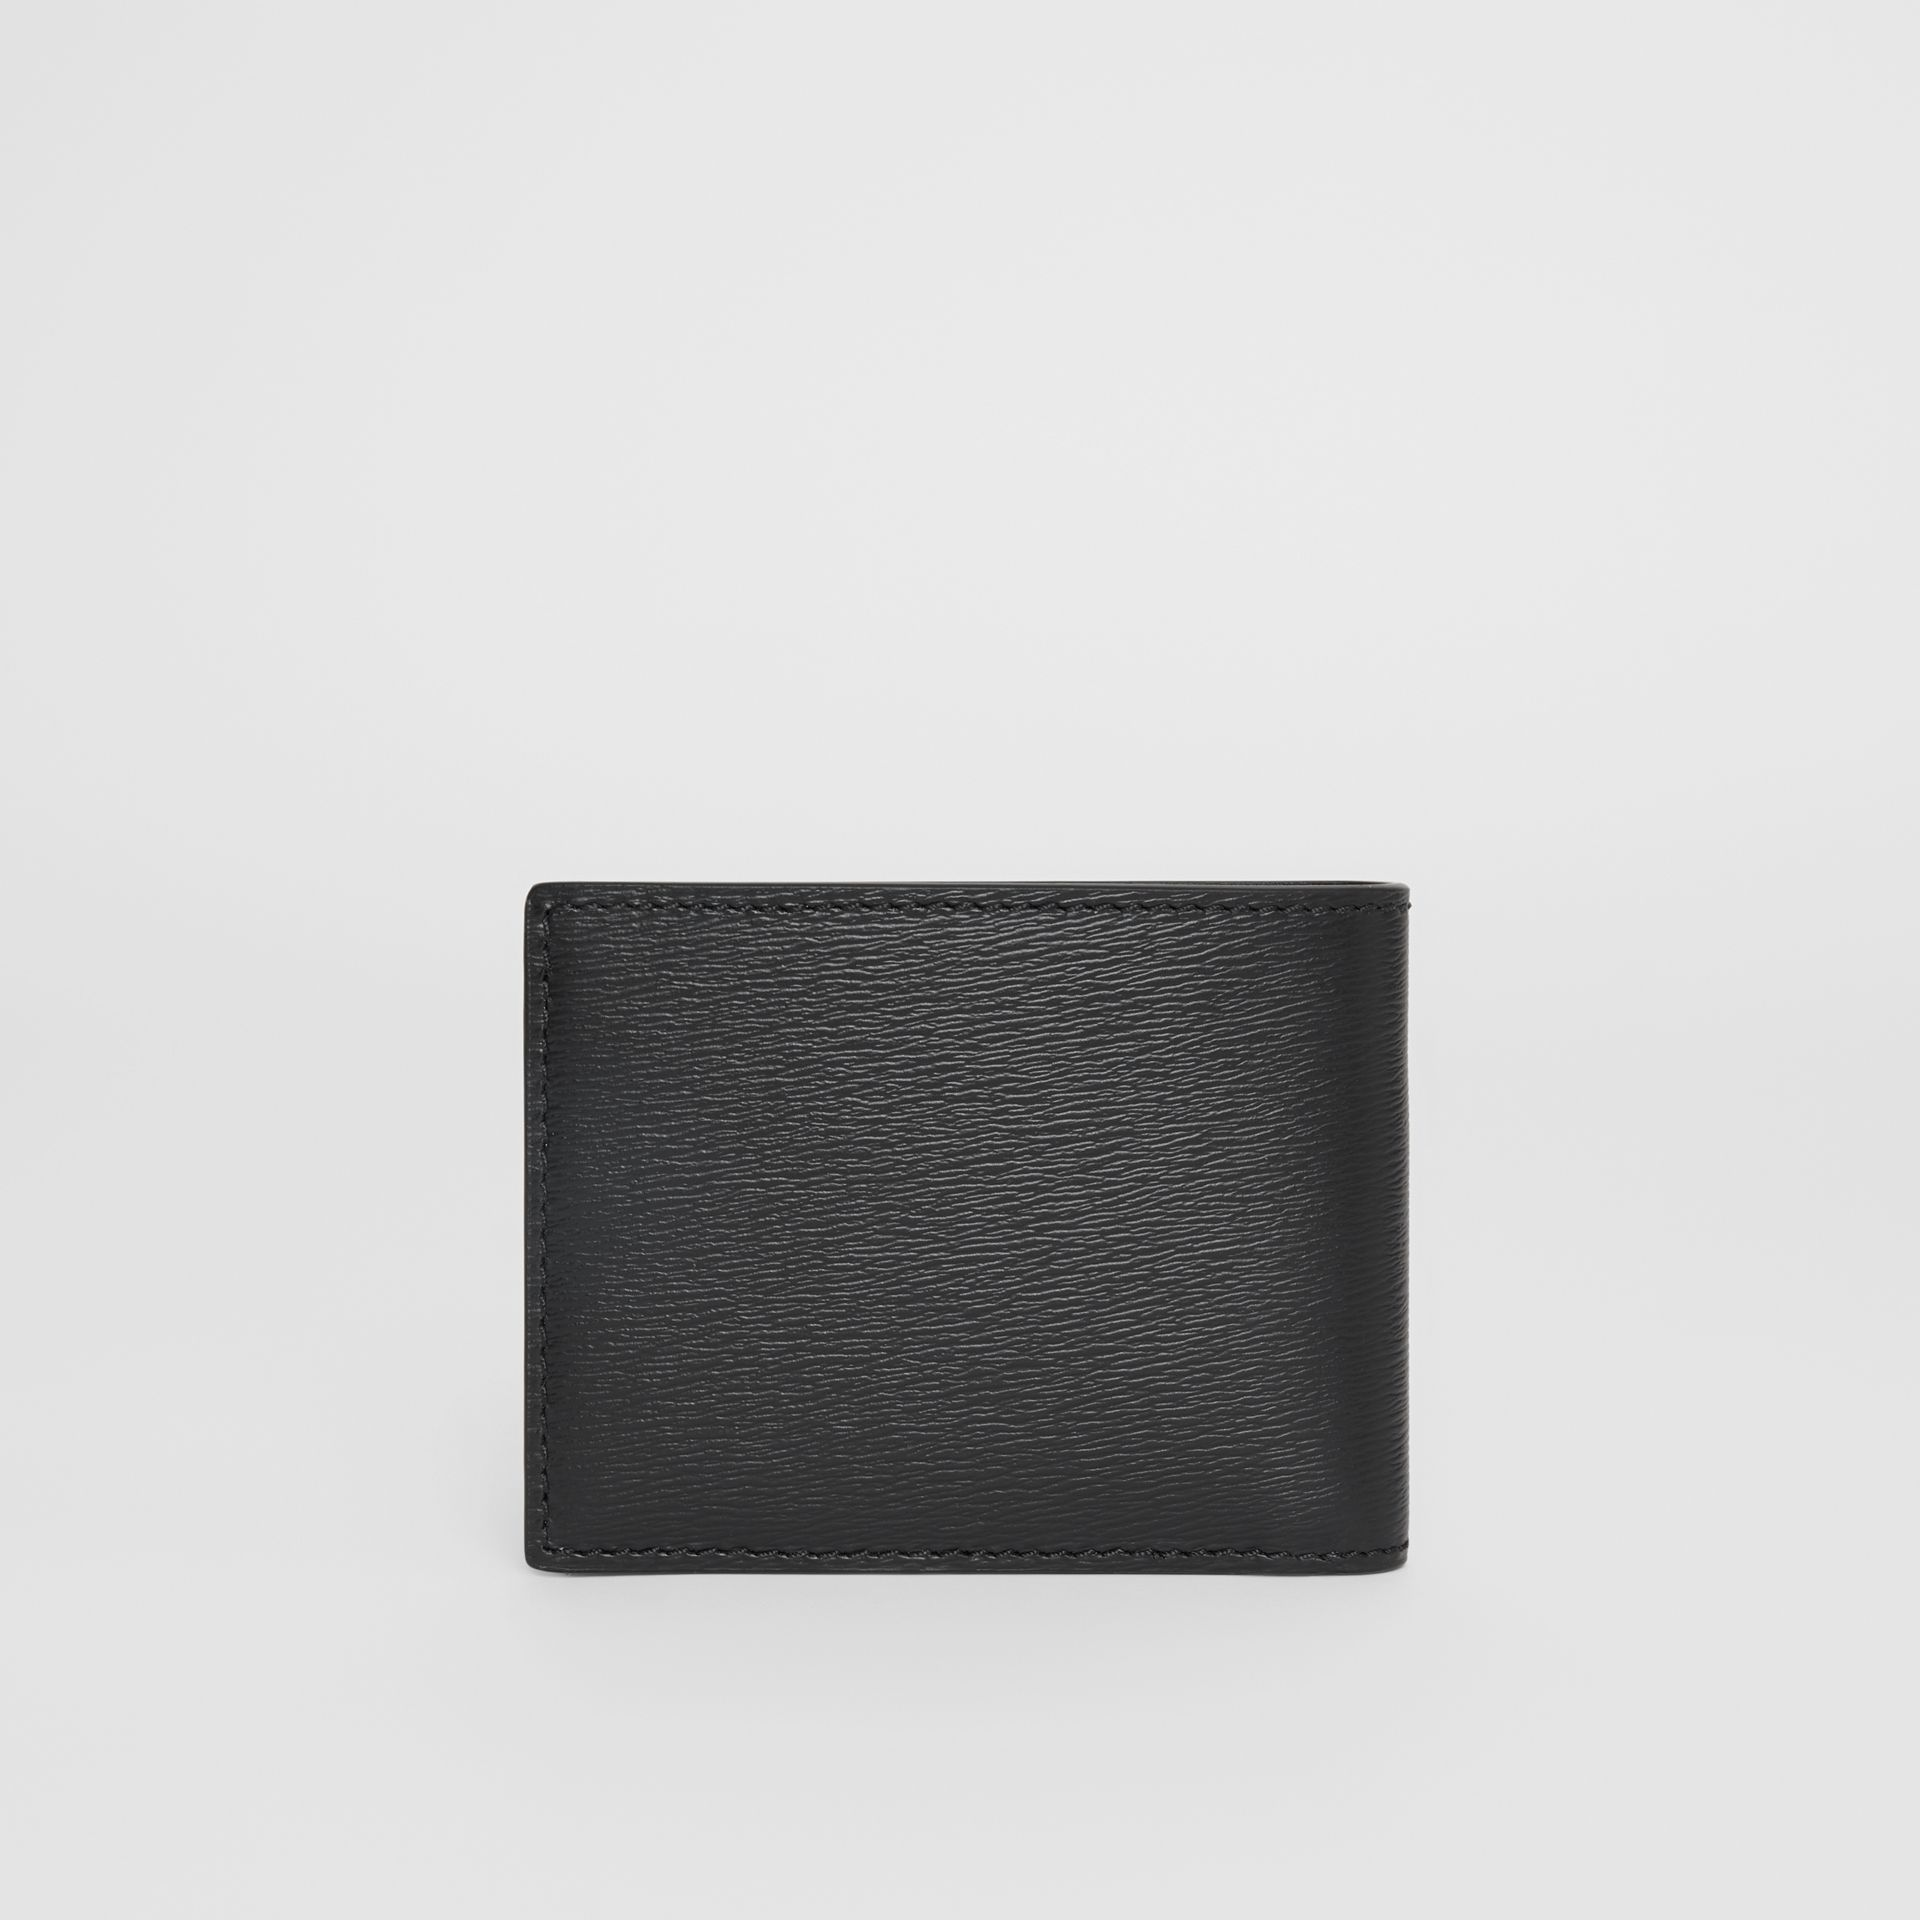 London Leather Bifold Wallet in Black - Men | Burberry United Kingdom - gallery image 4